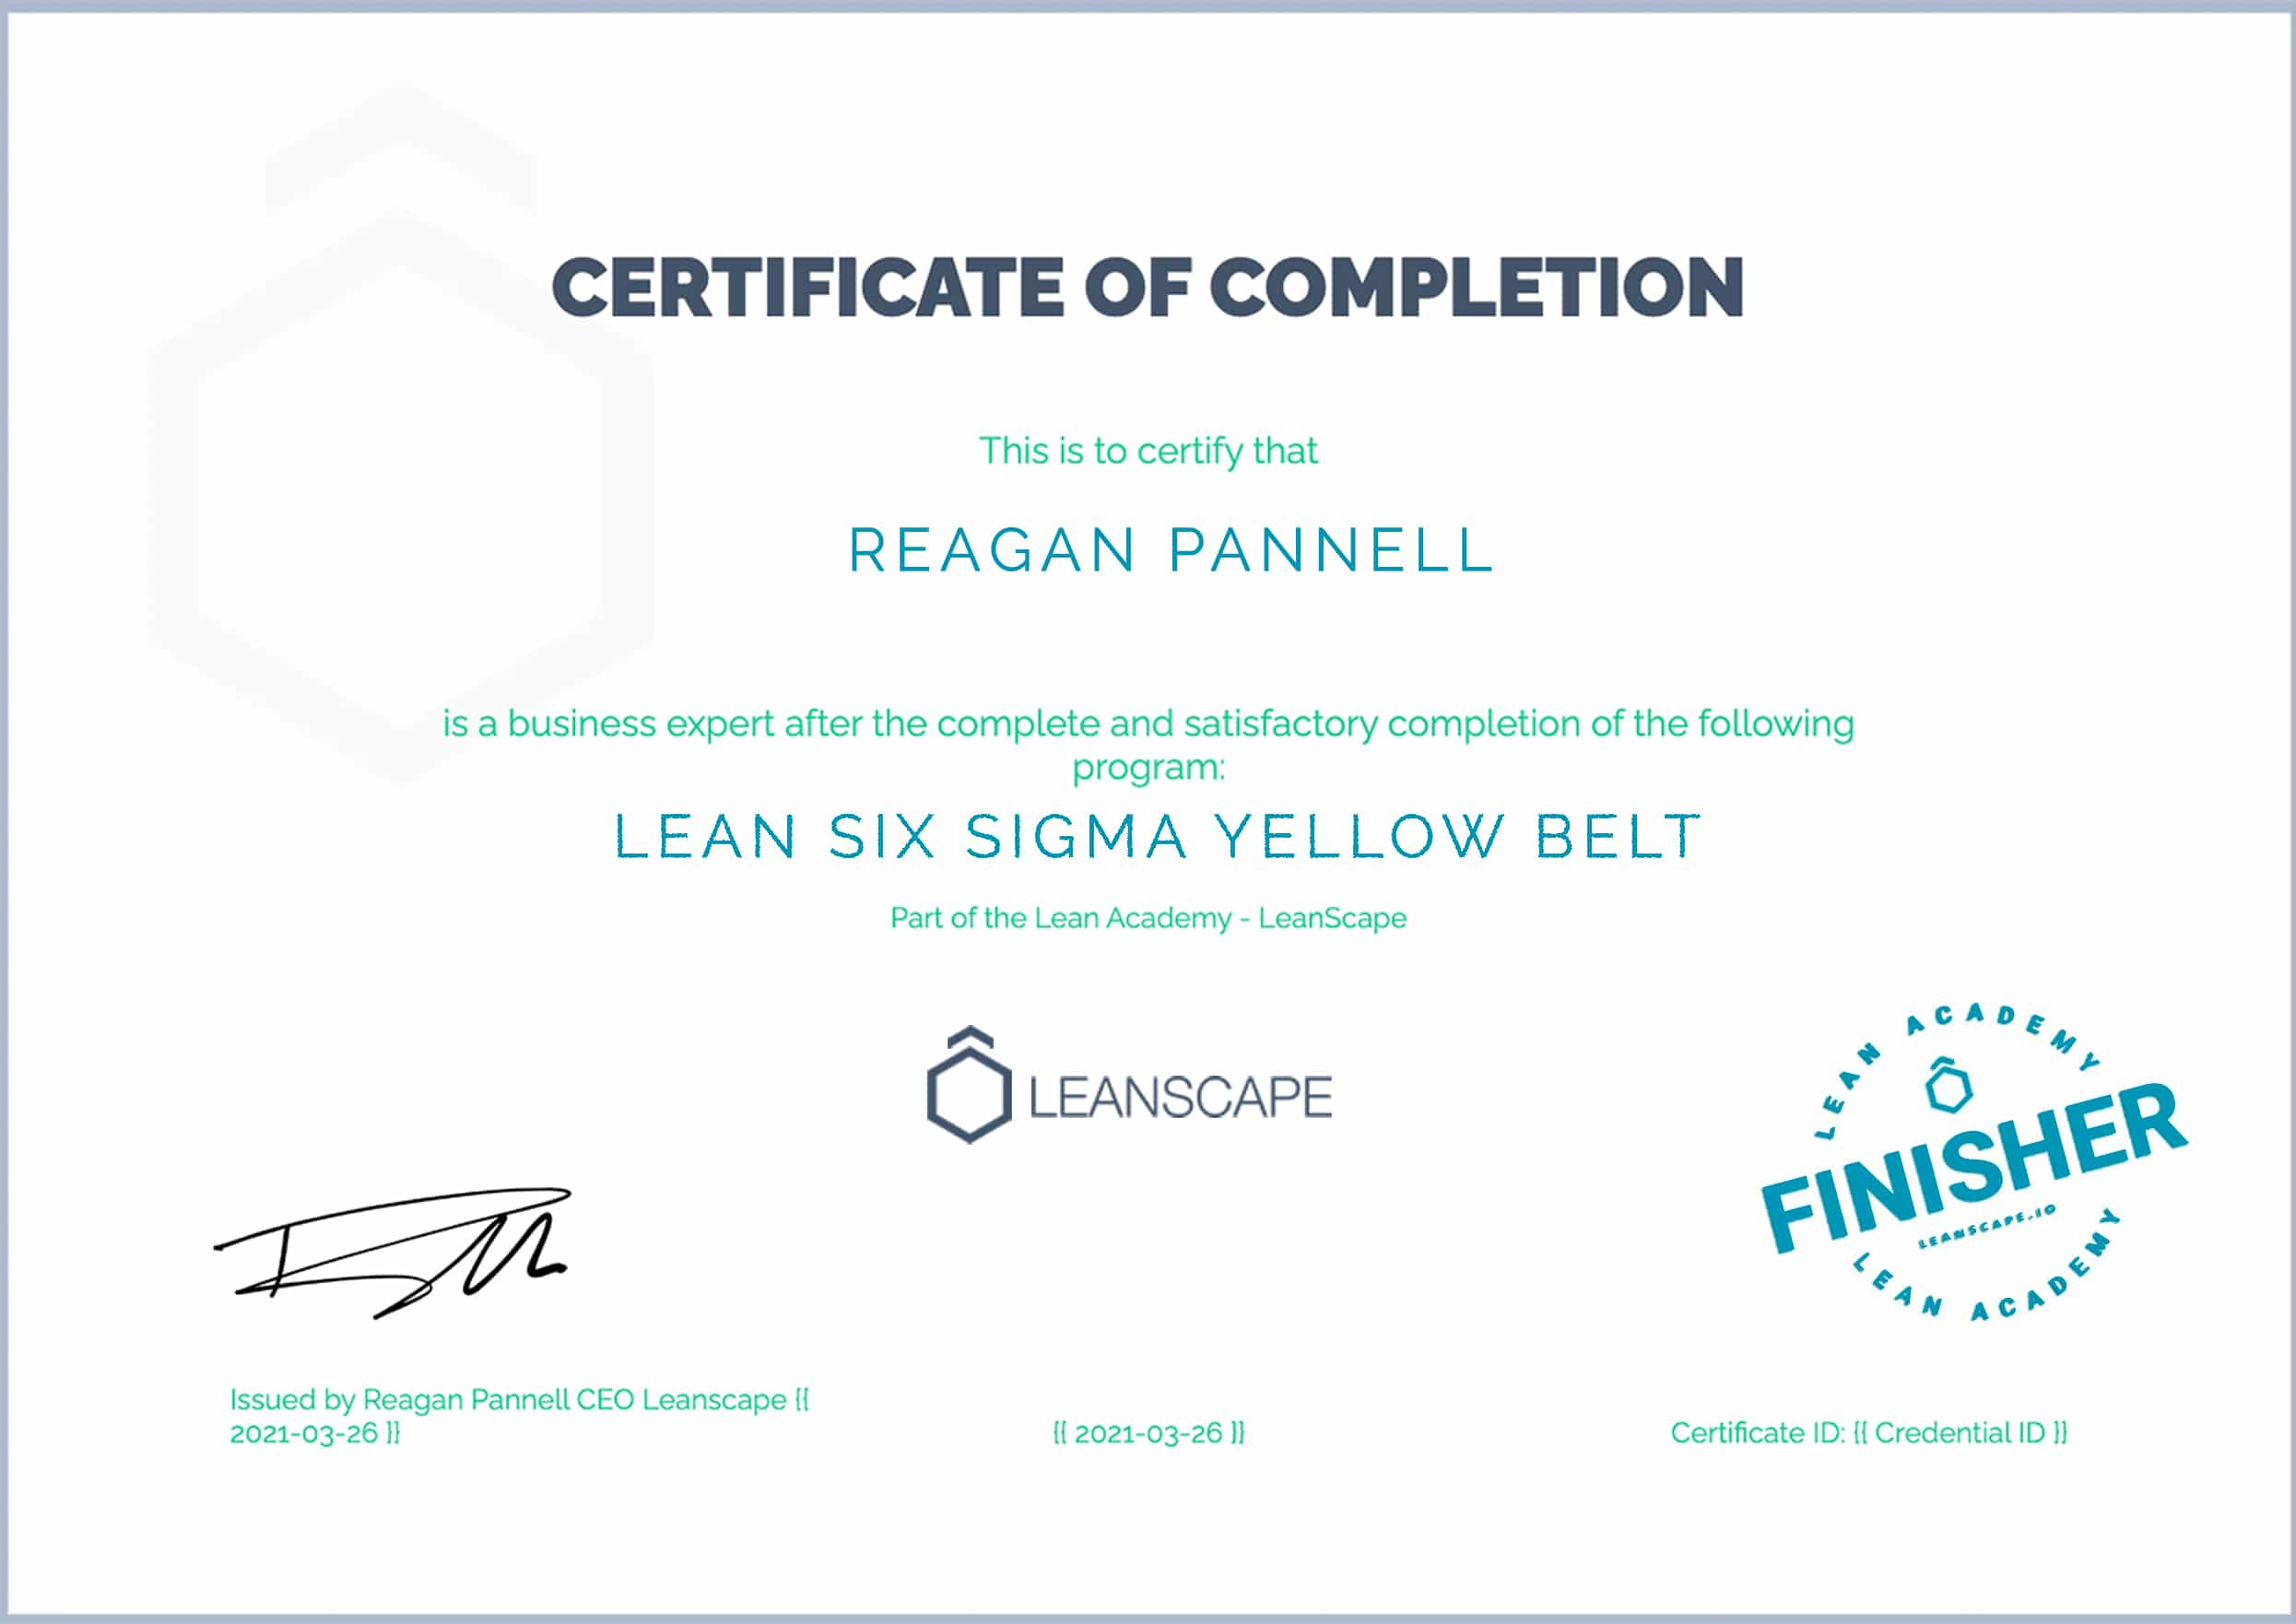 How Lean Six Sigma Yellow Belt will accelerate your career